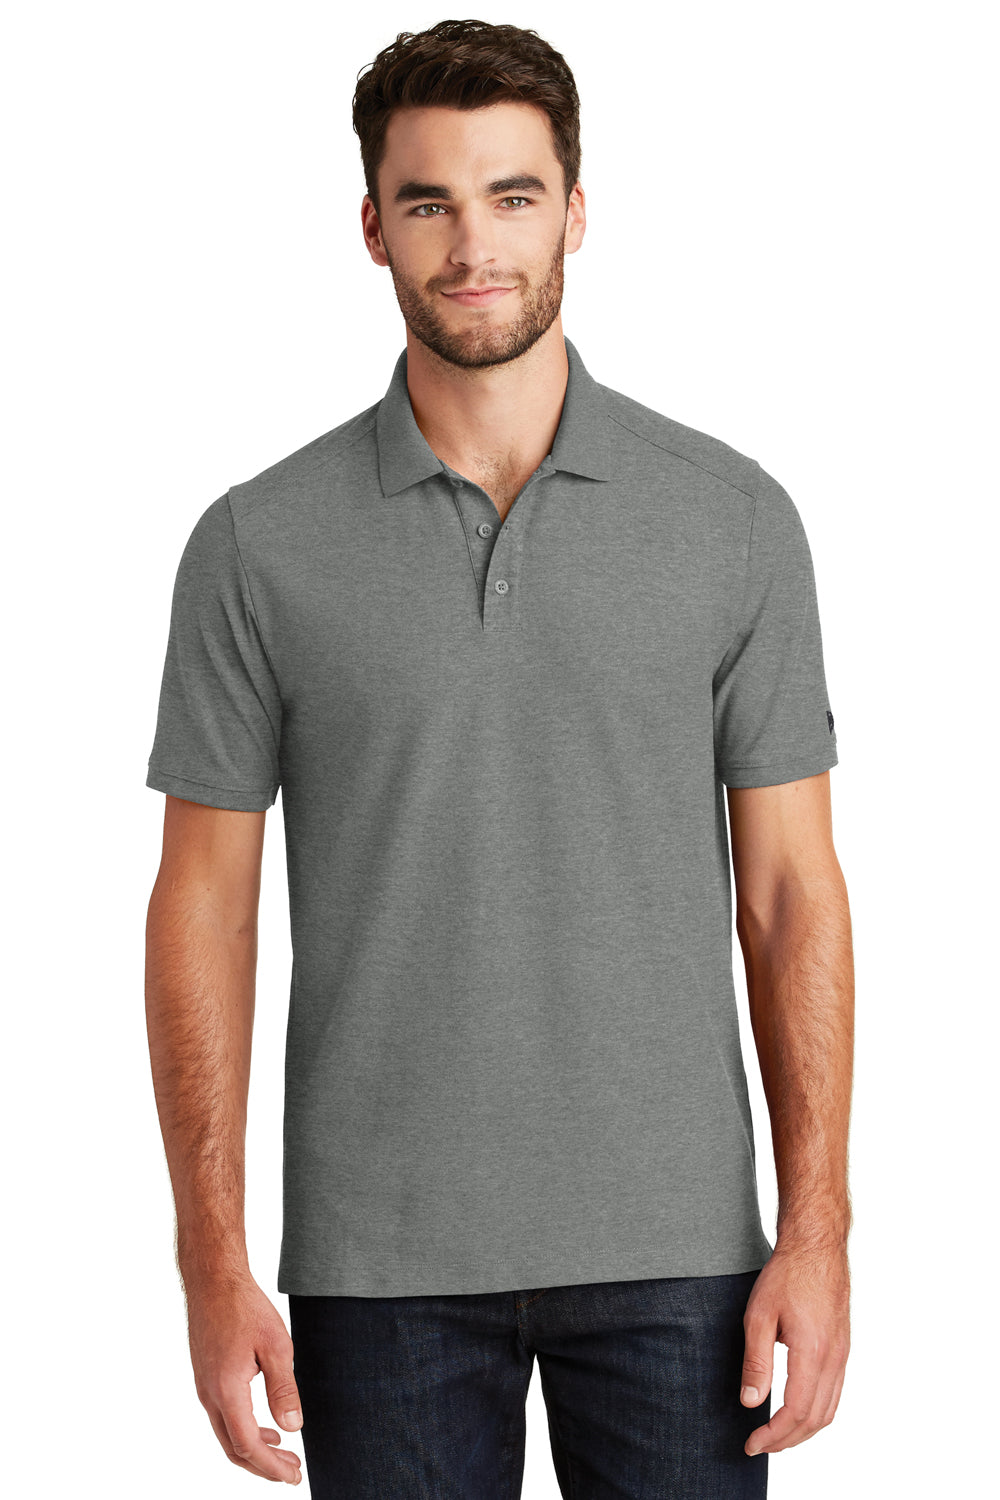 New Era NEA300 Mens Venue Home Plate Moisture Wicking Short Sleeve Polo Shirt Heather Graphite Grey Front